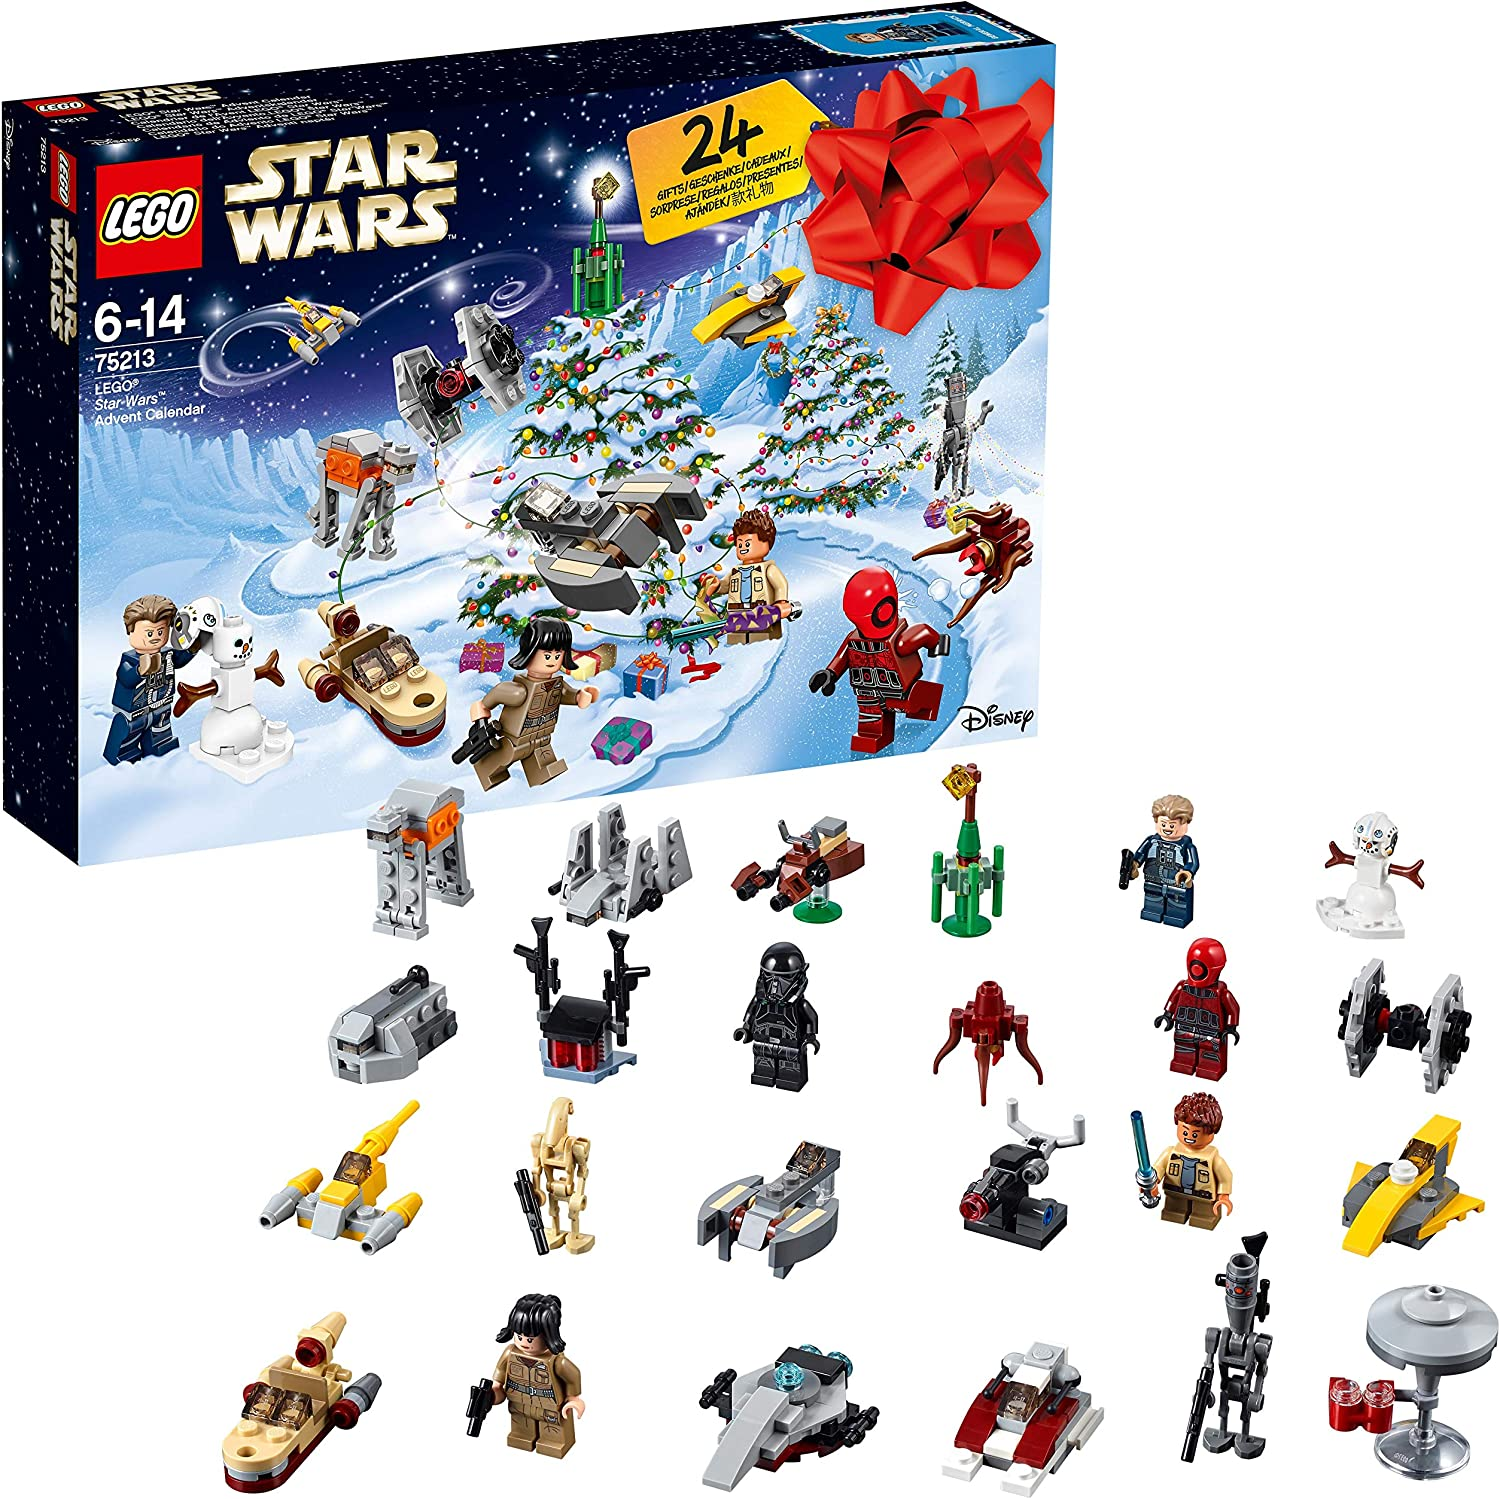 Amazon.com: 75213 LEGO Star Wars Star Wars Advent Calendar: Toys